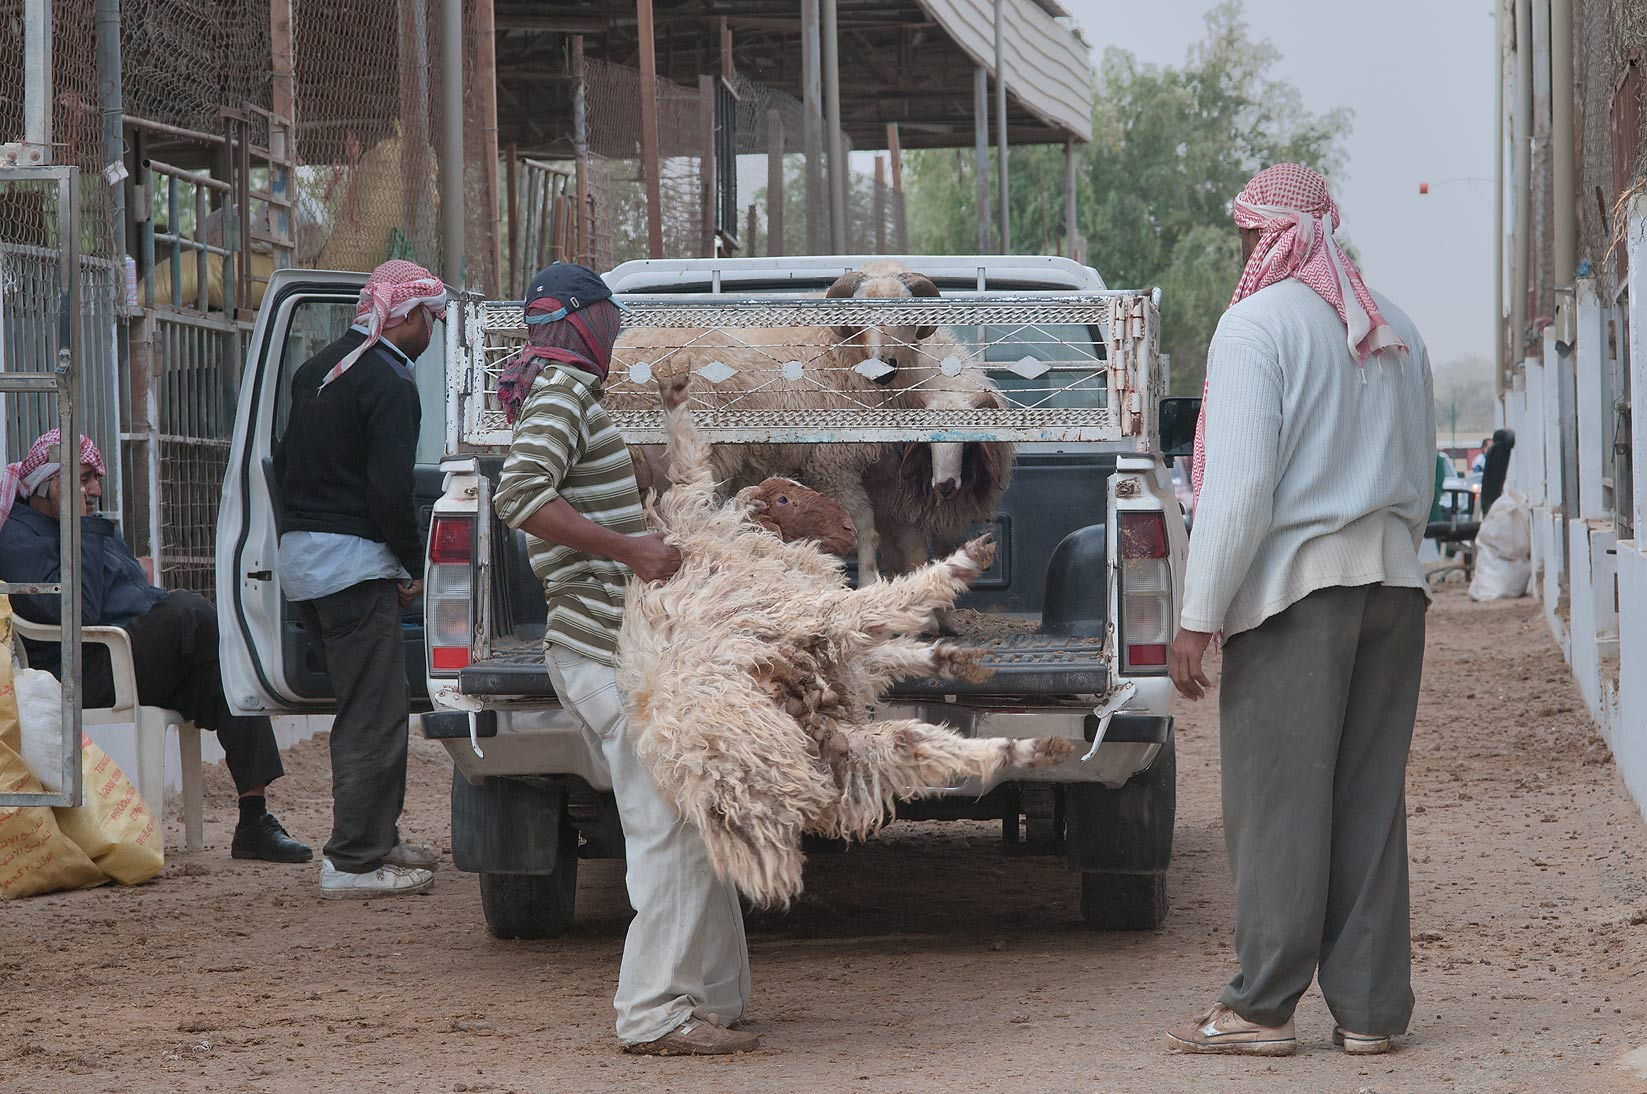 Loading a sheep on a truck in Sheep Market, Wholesale Markets area. Doha, Qatar